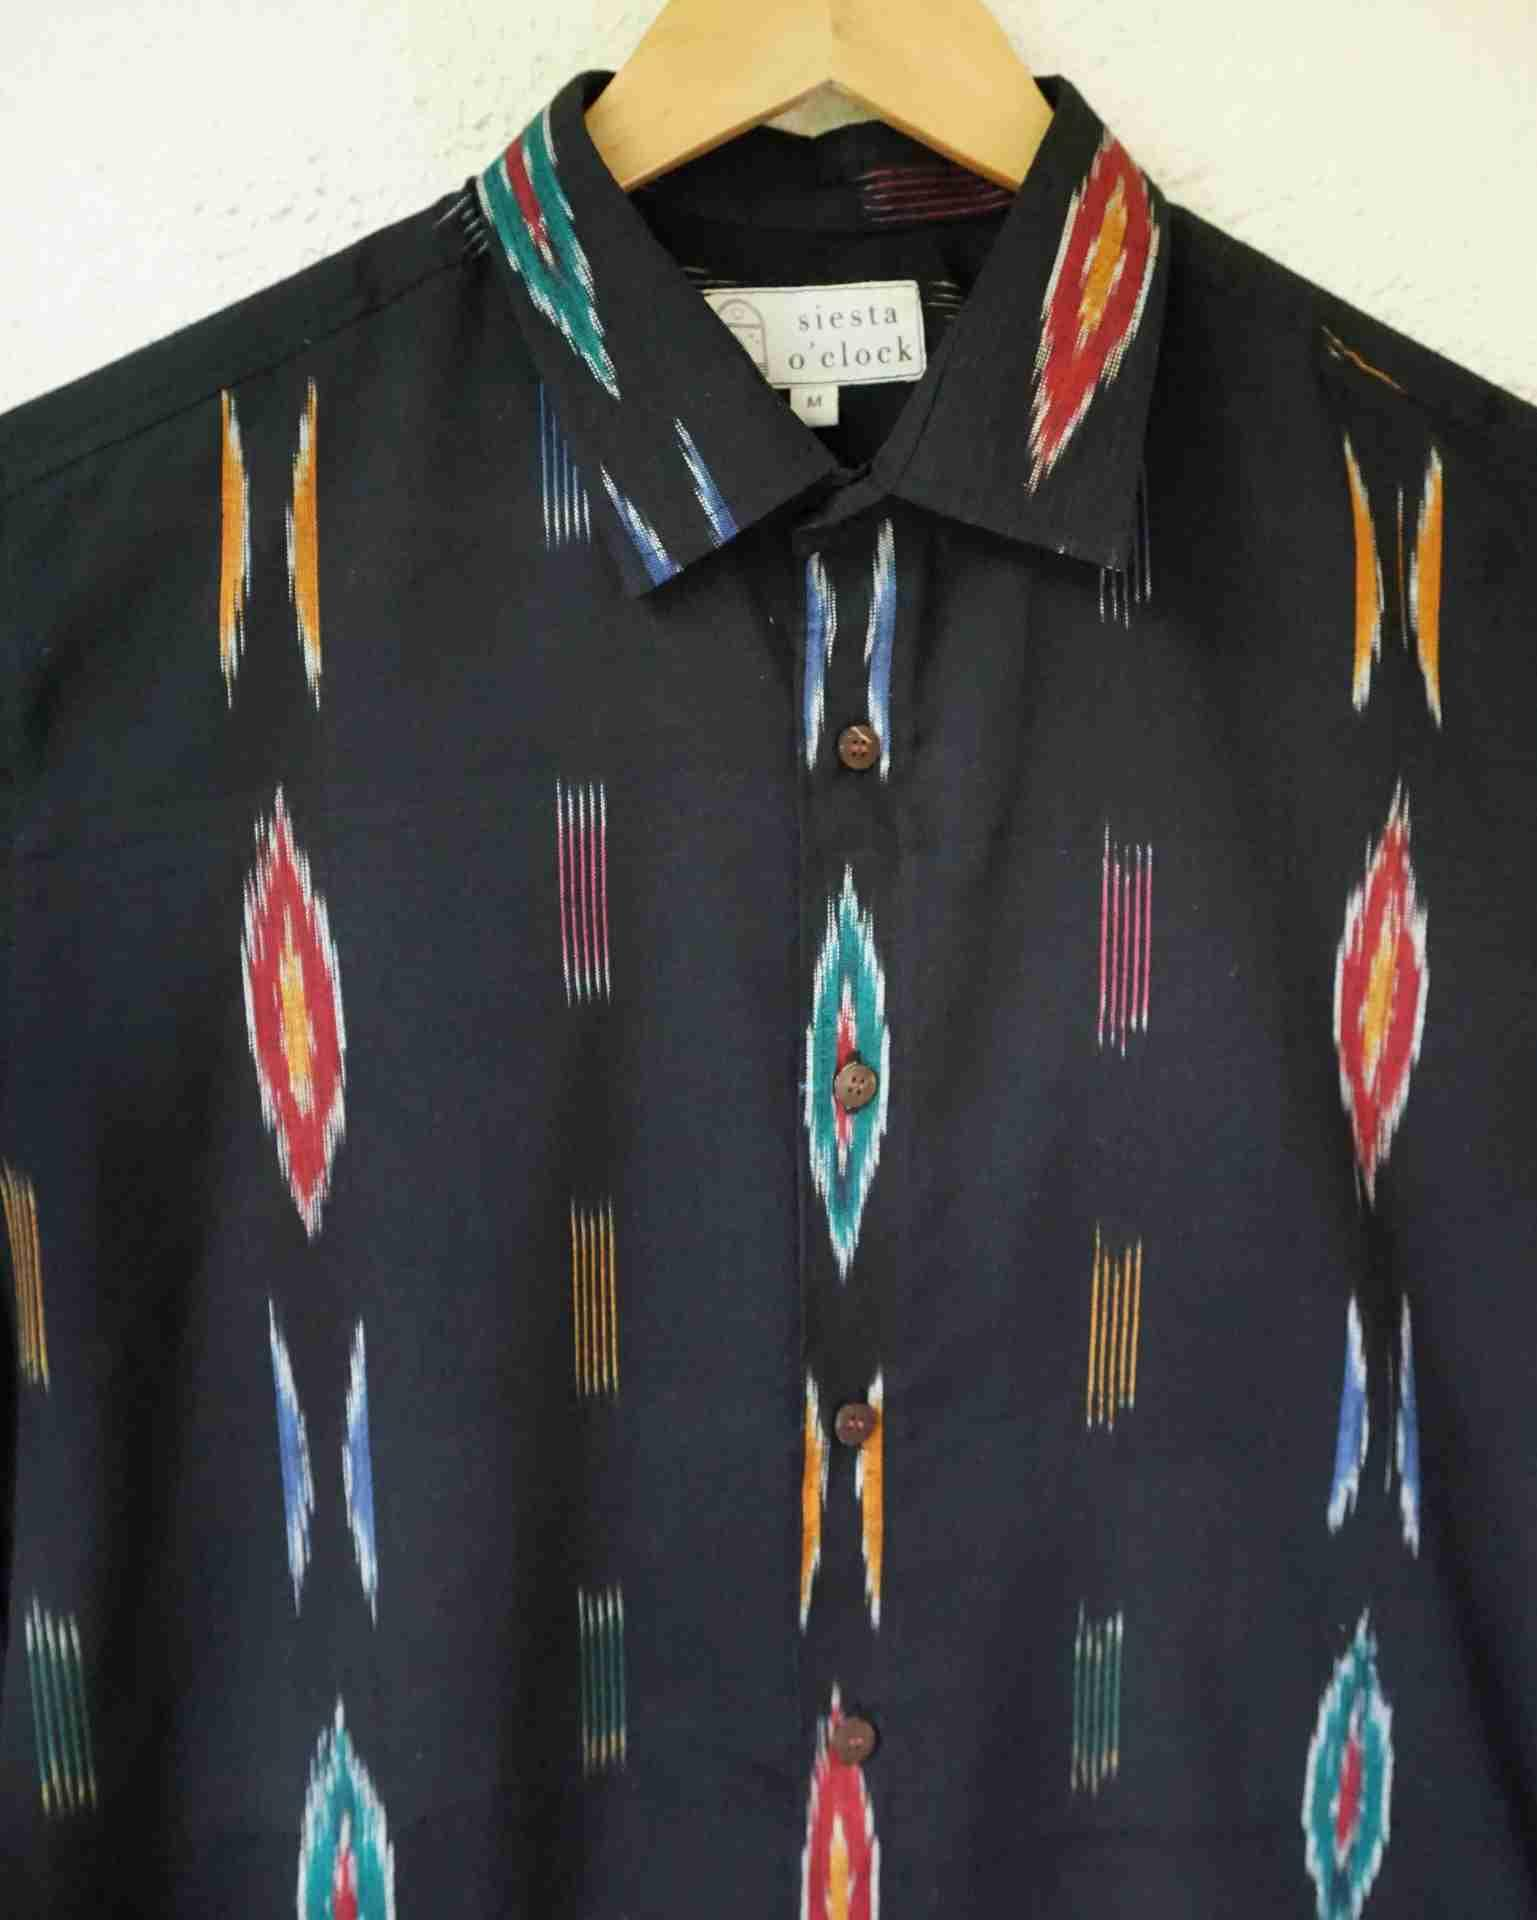 Black Ikat cotton shirt by Siesta o'Clock